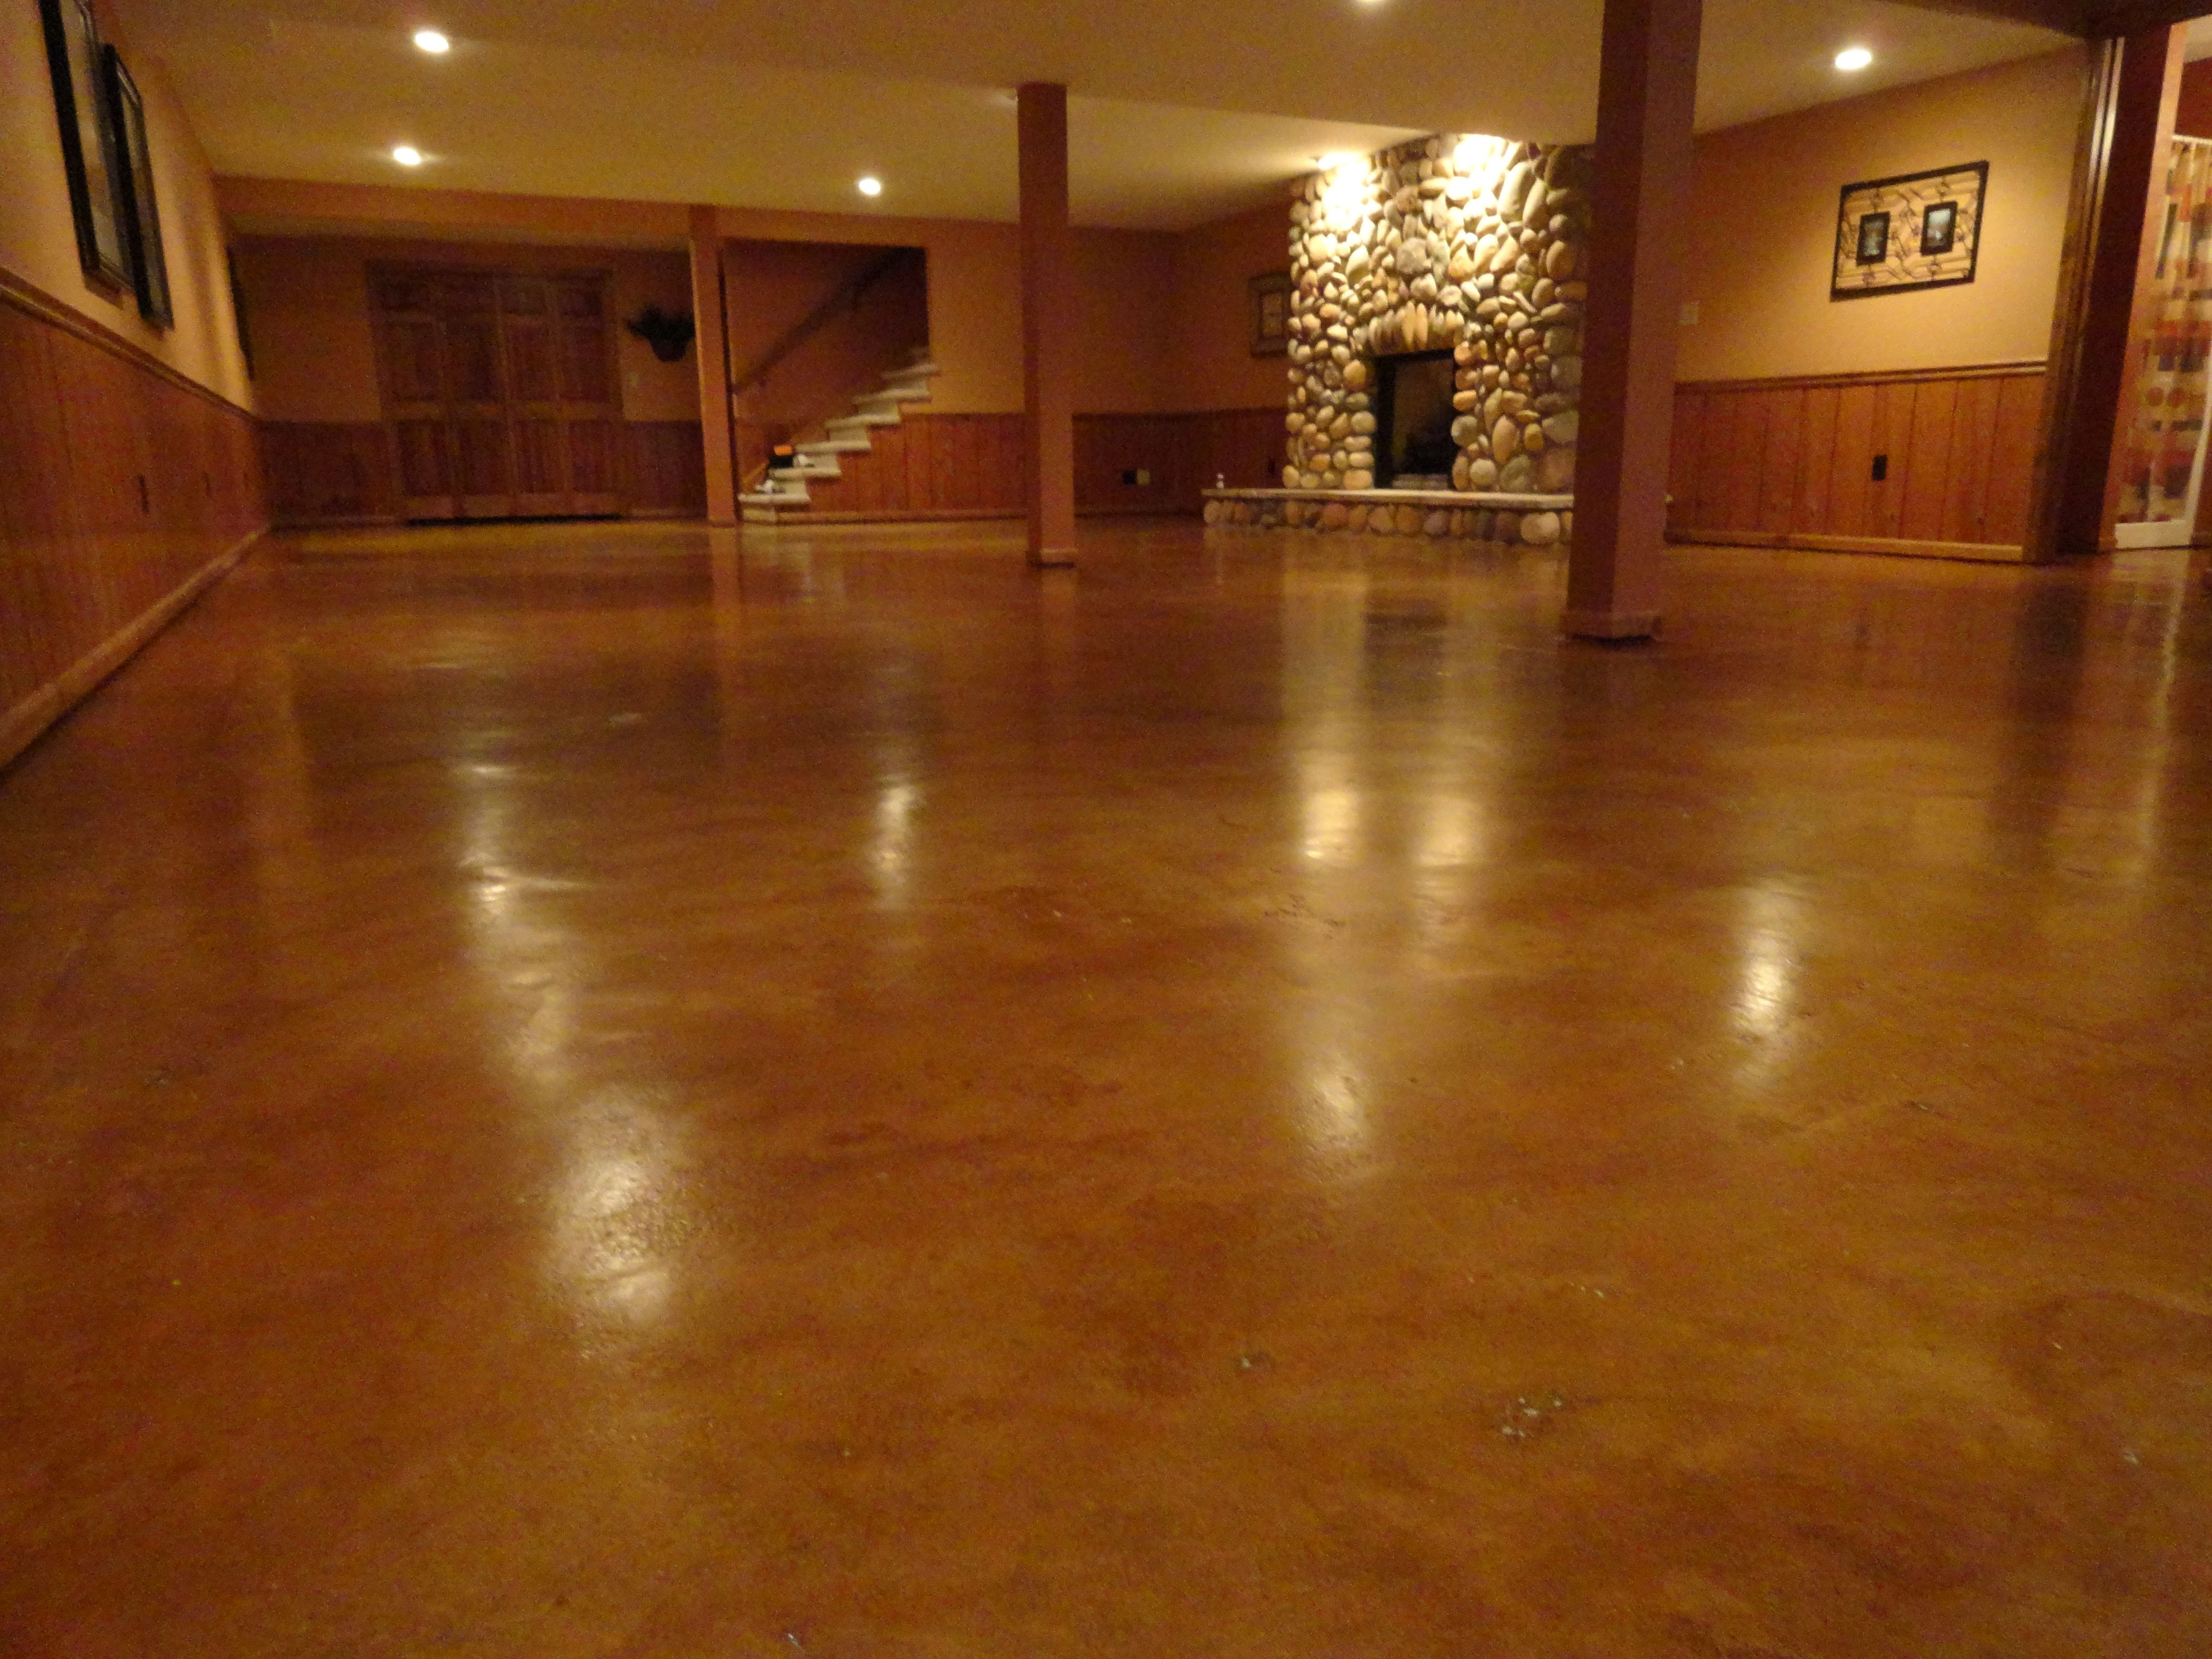 hardwood floor refinishing fort wayne in of stained concrete floor fort wayne polished concrete nick dancer with regard to stained concrete floor fort wayne polished concrete nick dancer concrete 10